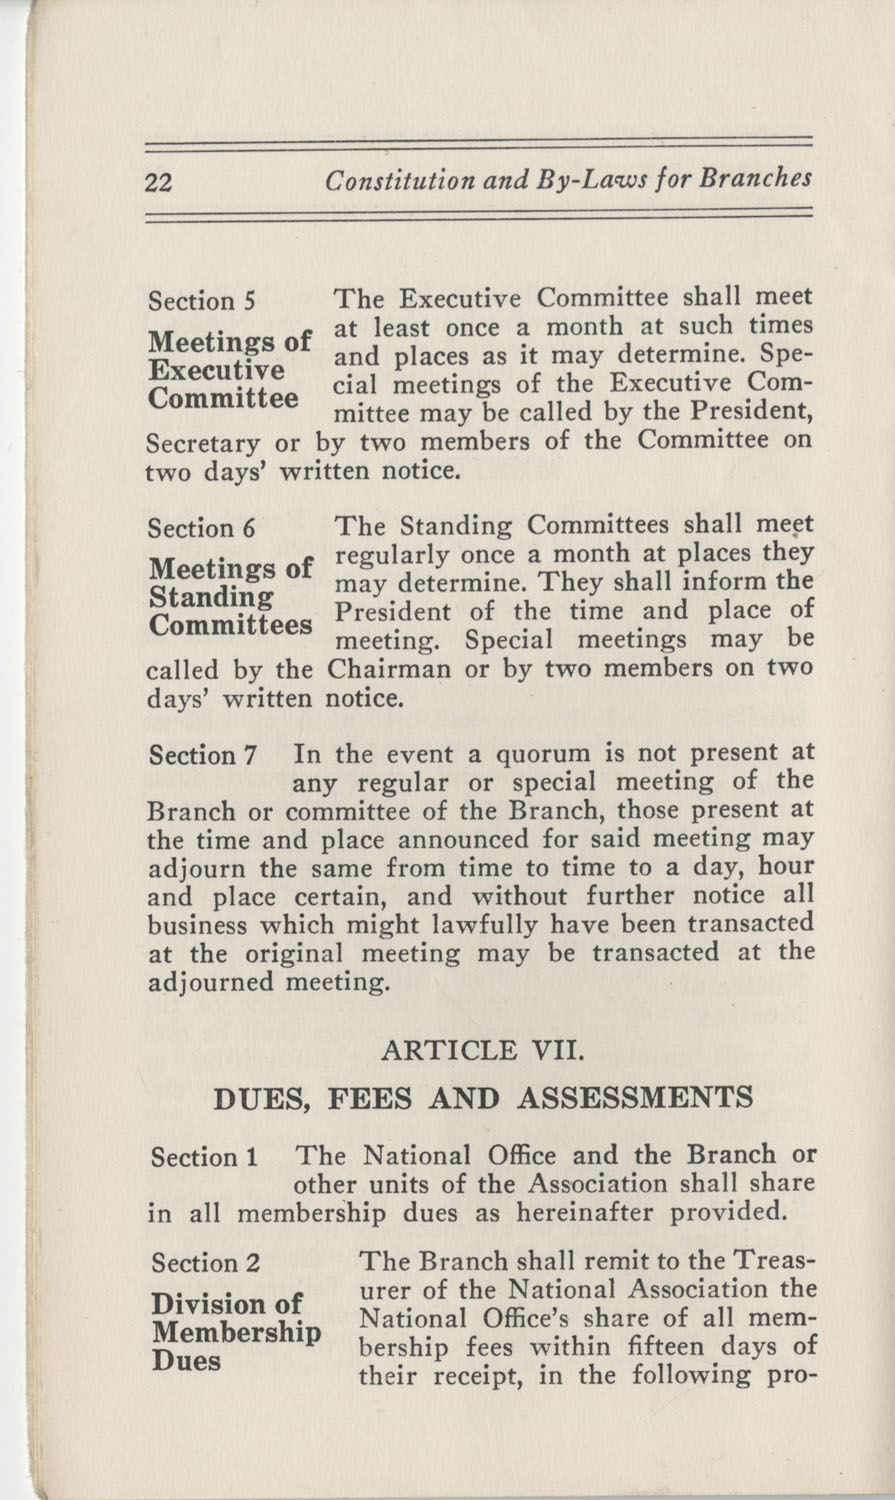 Constitutions and By-Laws, September 1960, Page 22